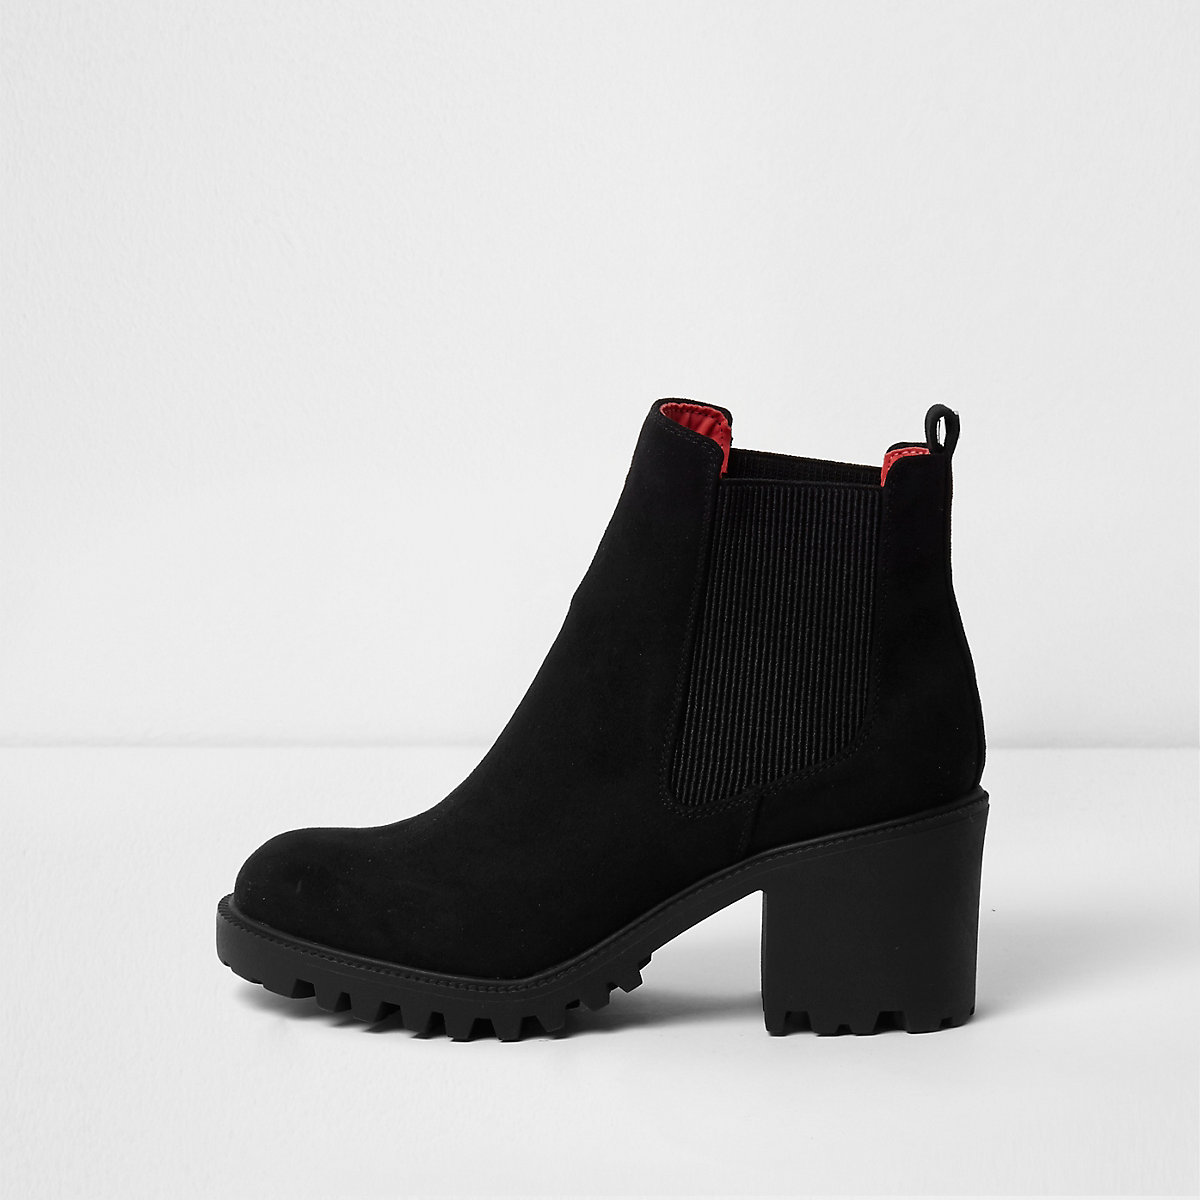 black boots for women